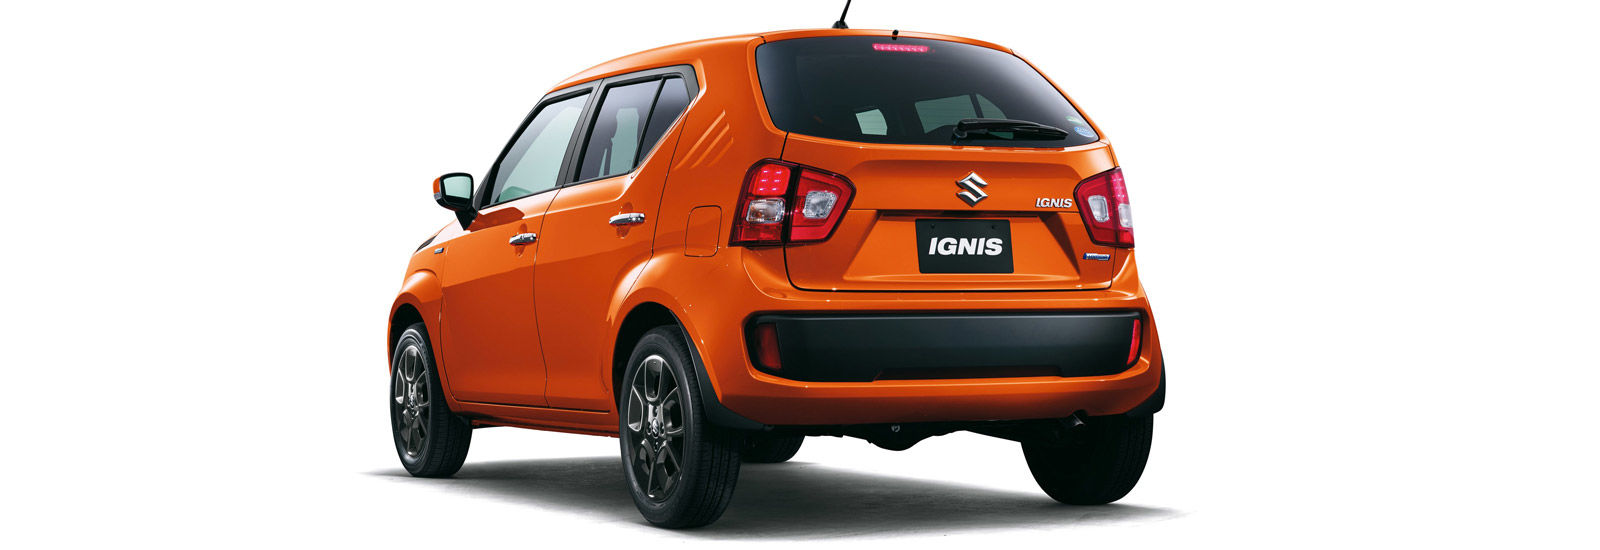 2017 suzuki ignis price specs and release date carwow. Black Bedroom Furniture Sets. Home Design Ideas